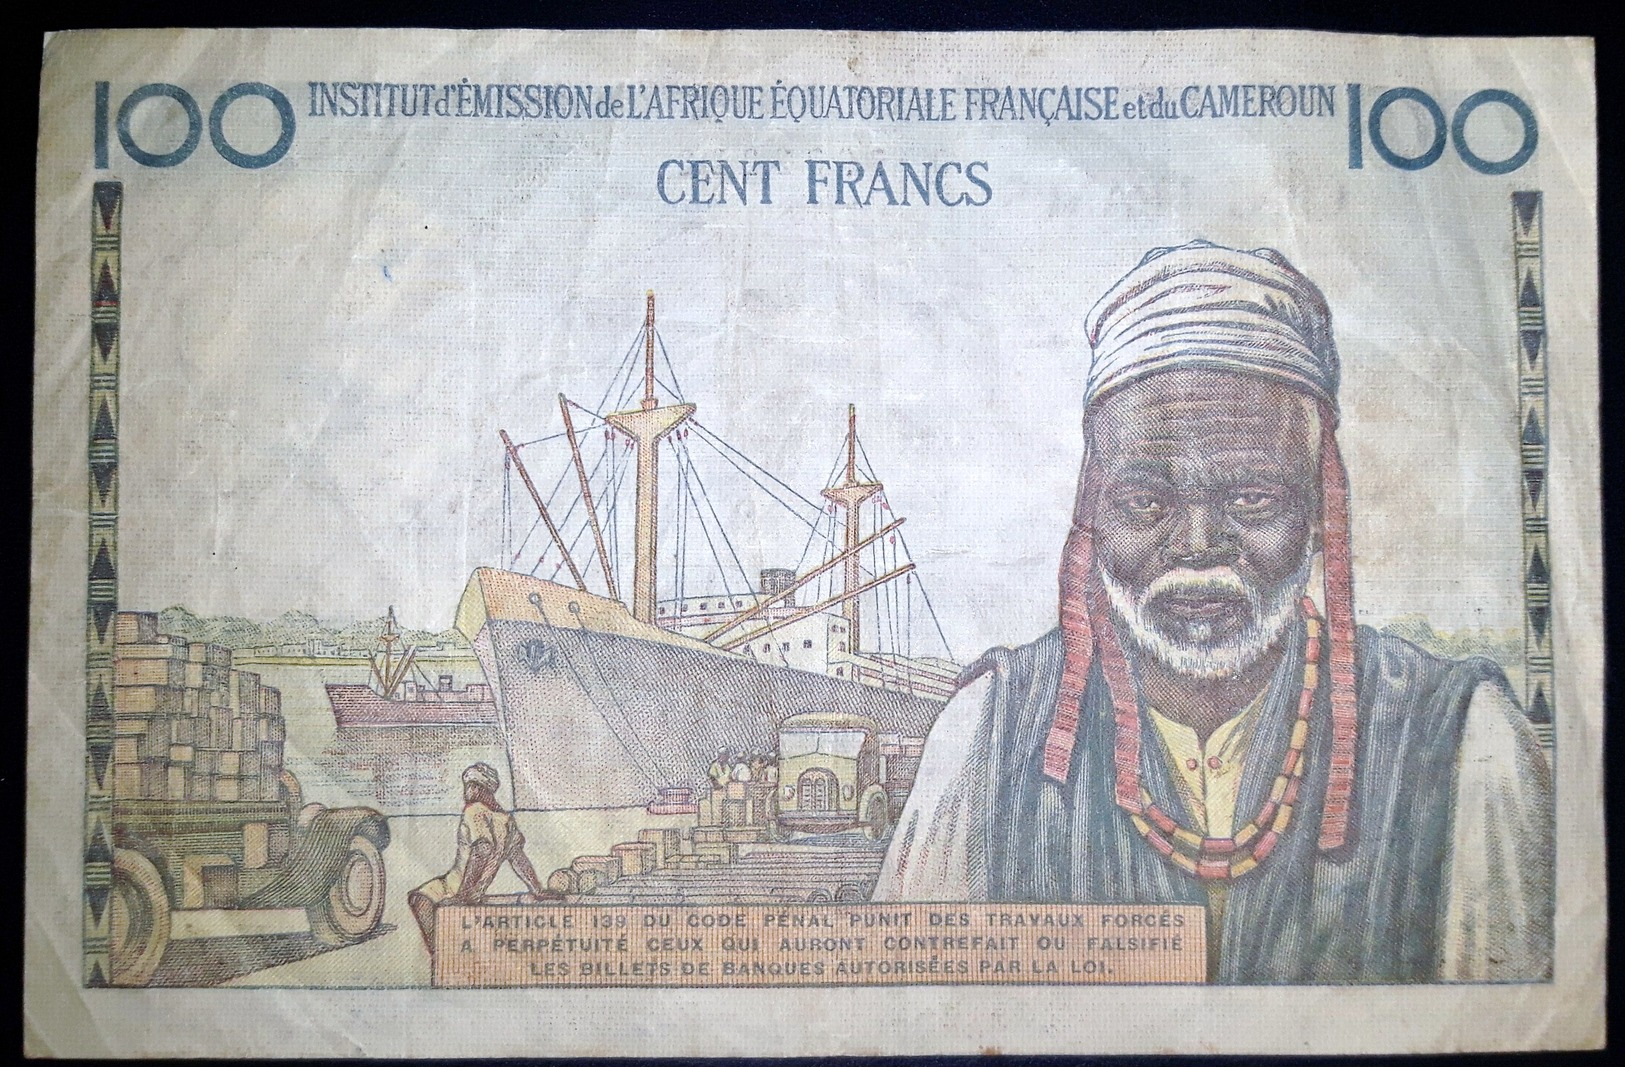 FRENCH EQUATORIAL AFRICA. CAMEROON 100 FRANCS 1957. PICK 32 - Banknotes